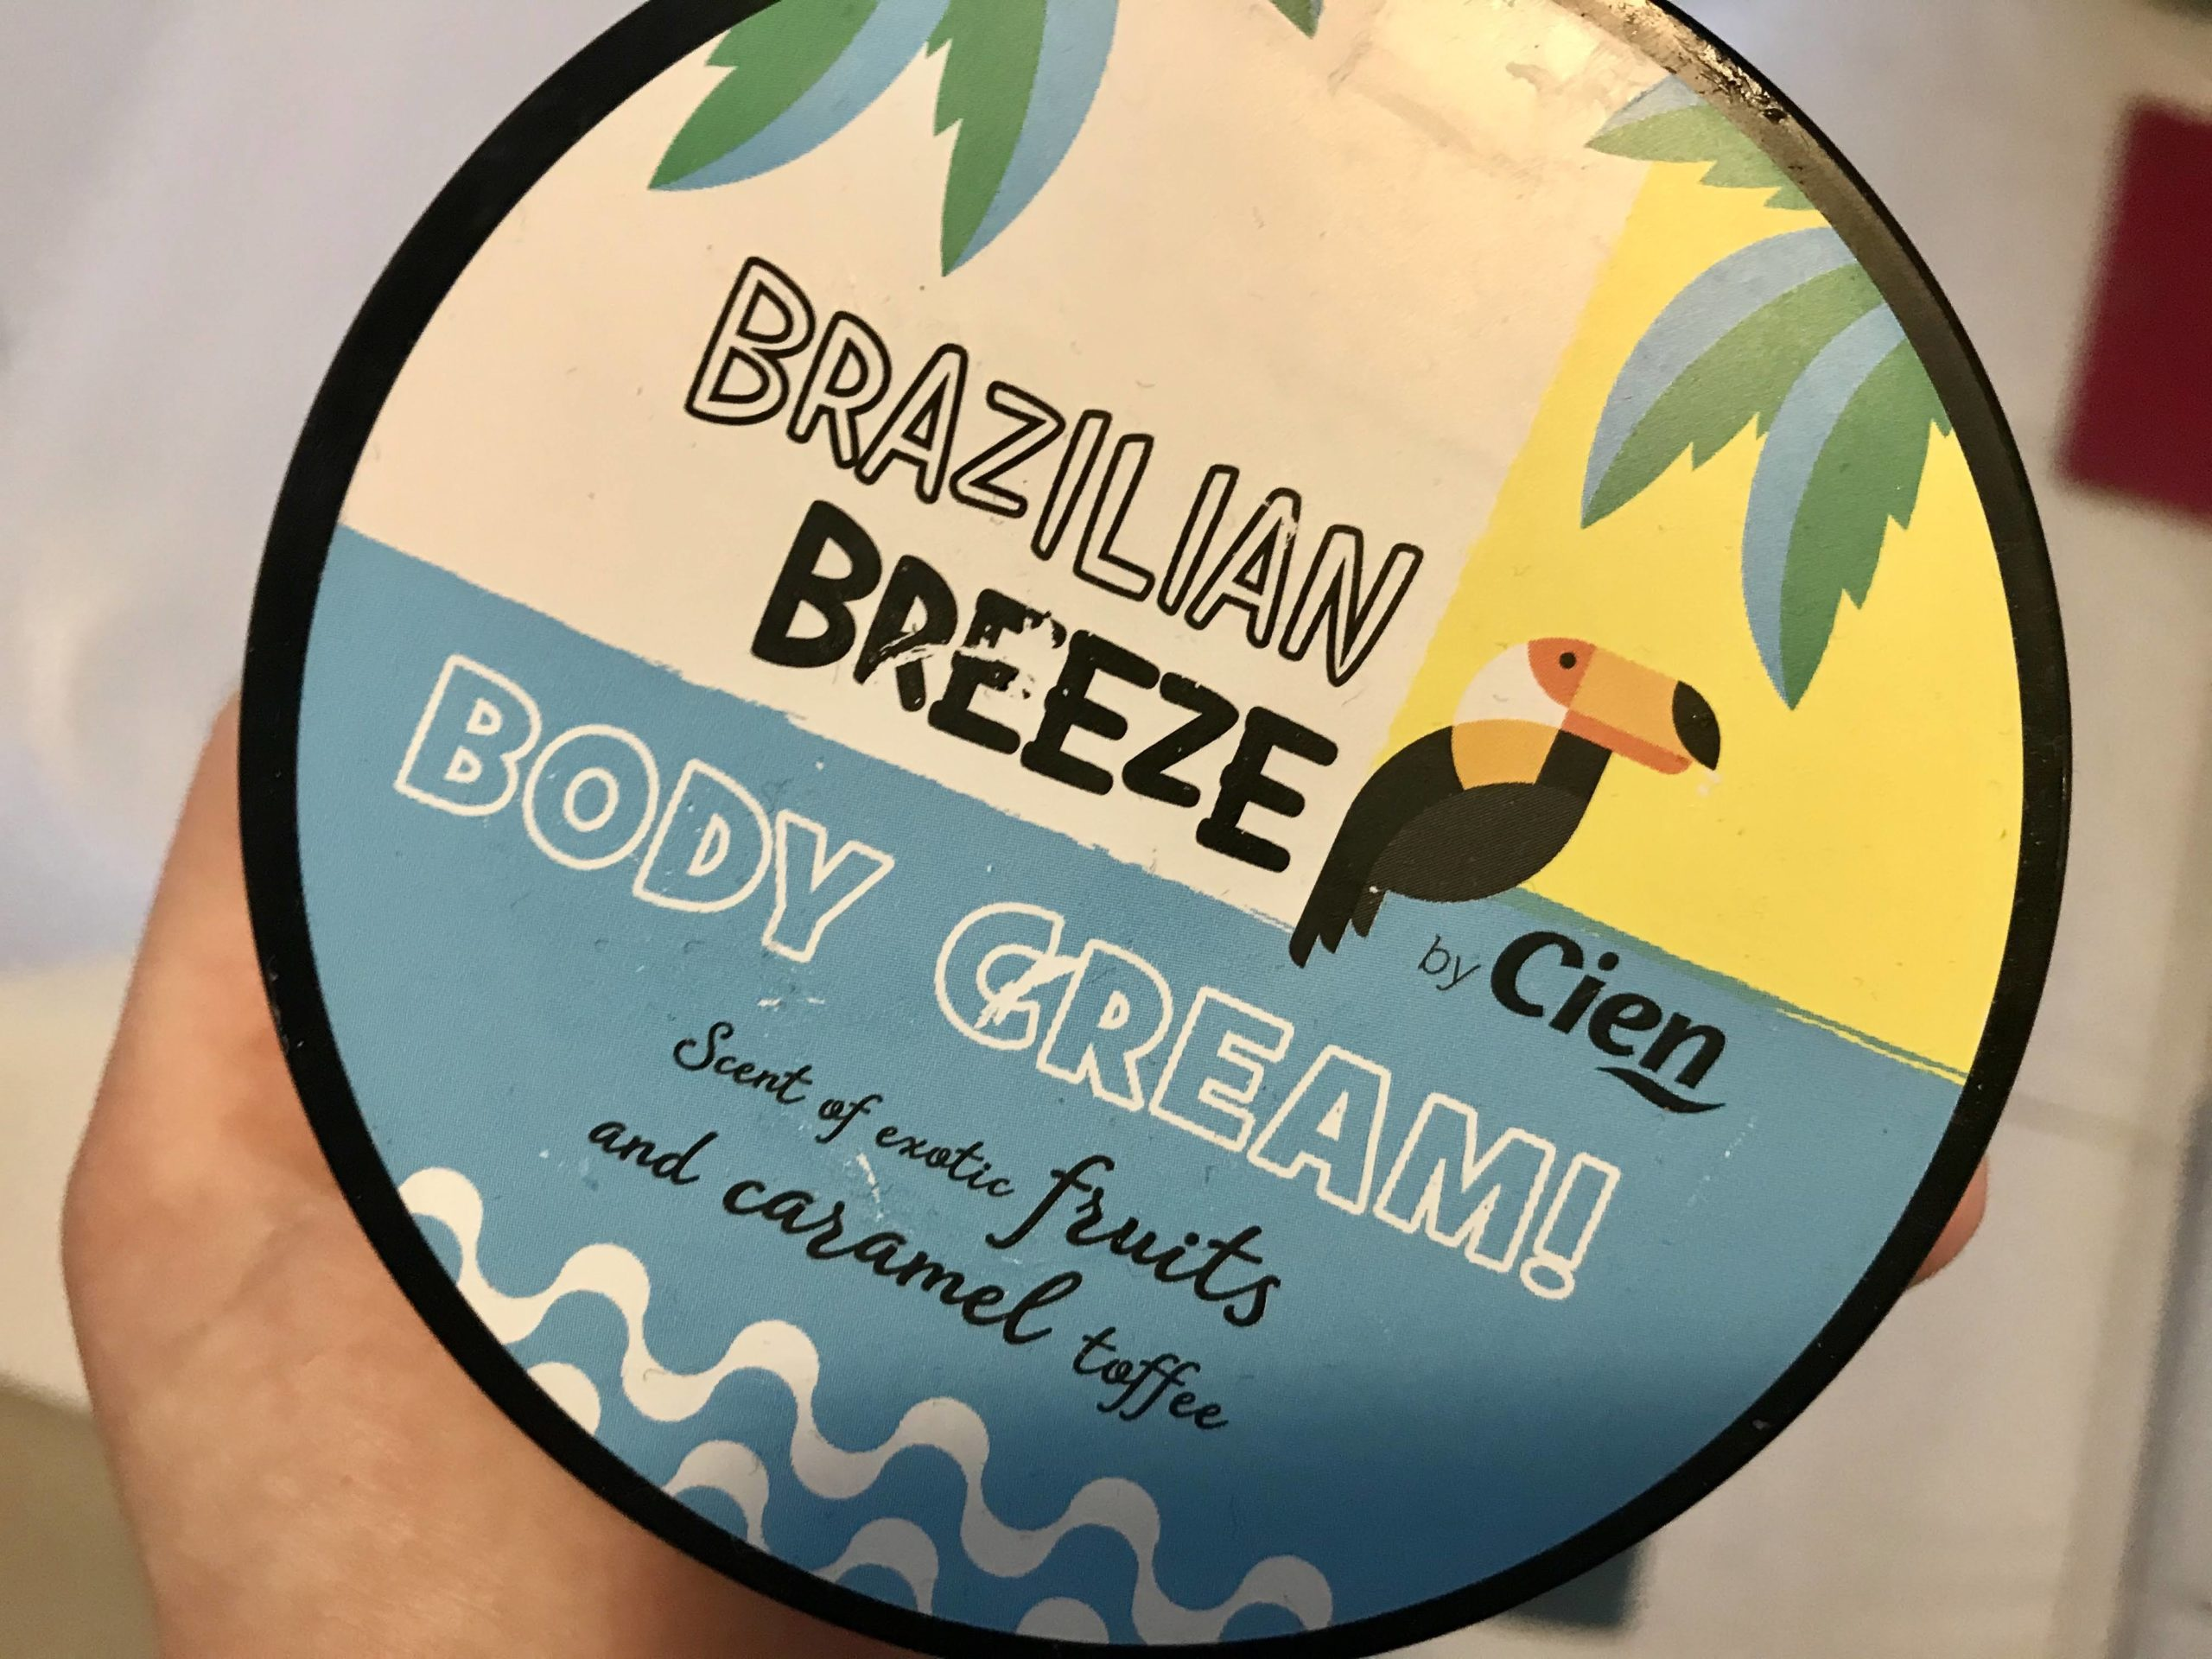 cien brazilian breeze cream